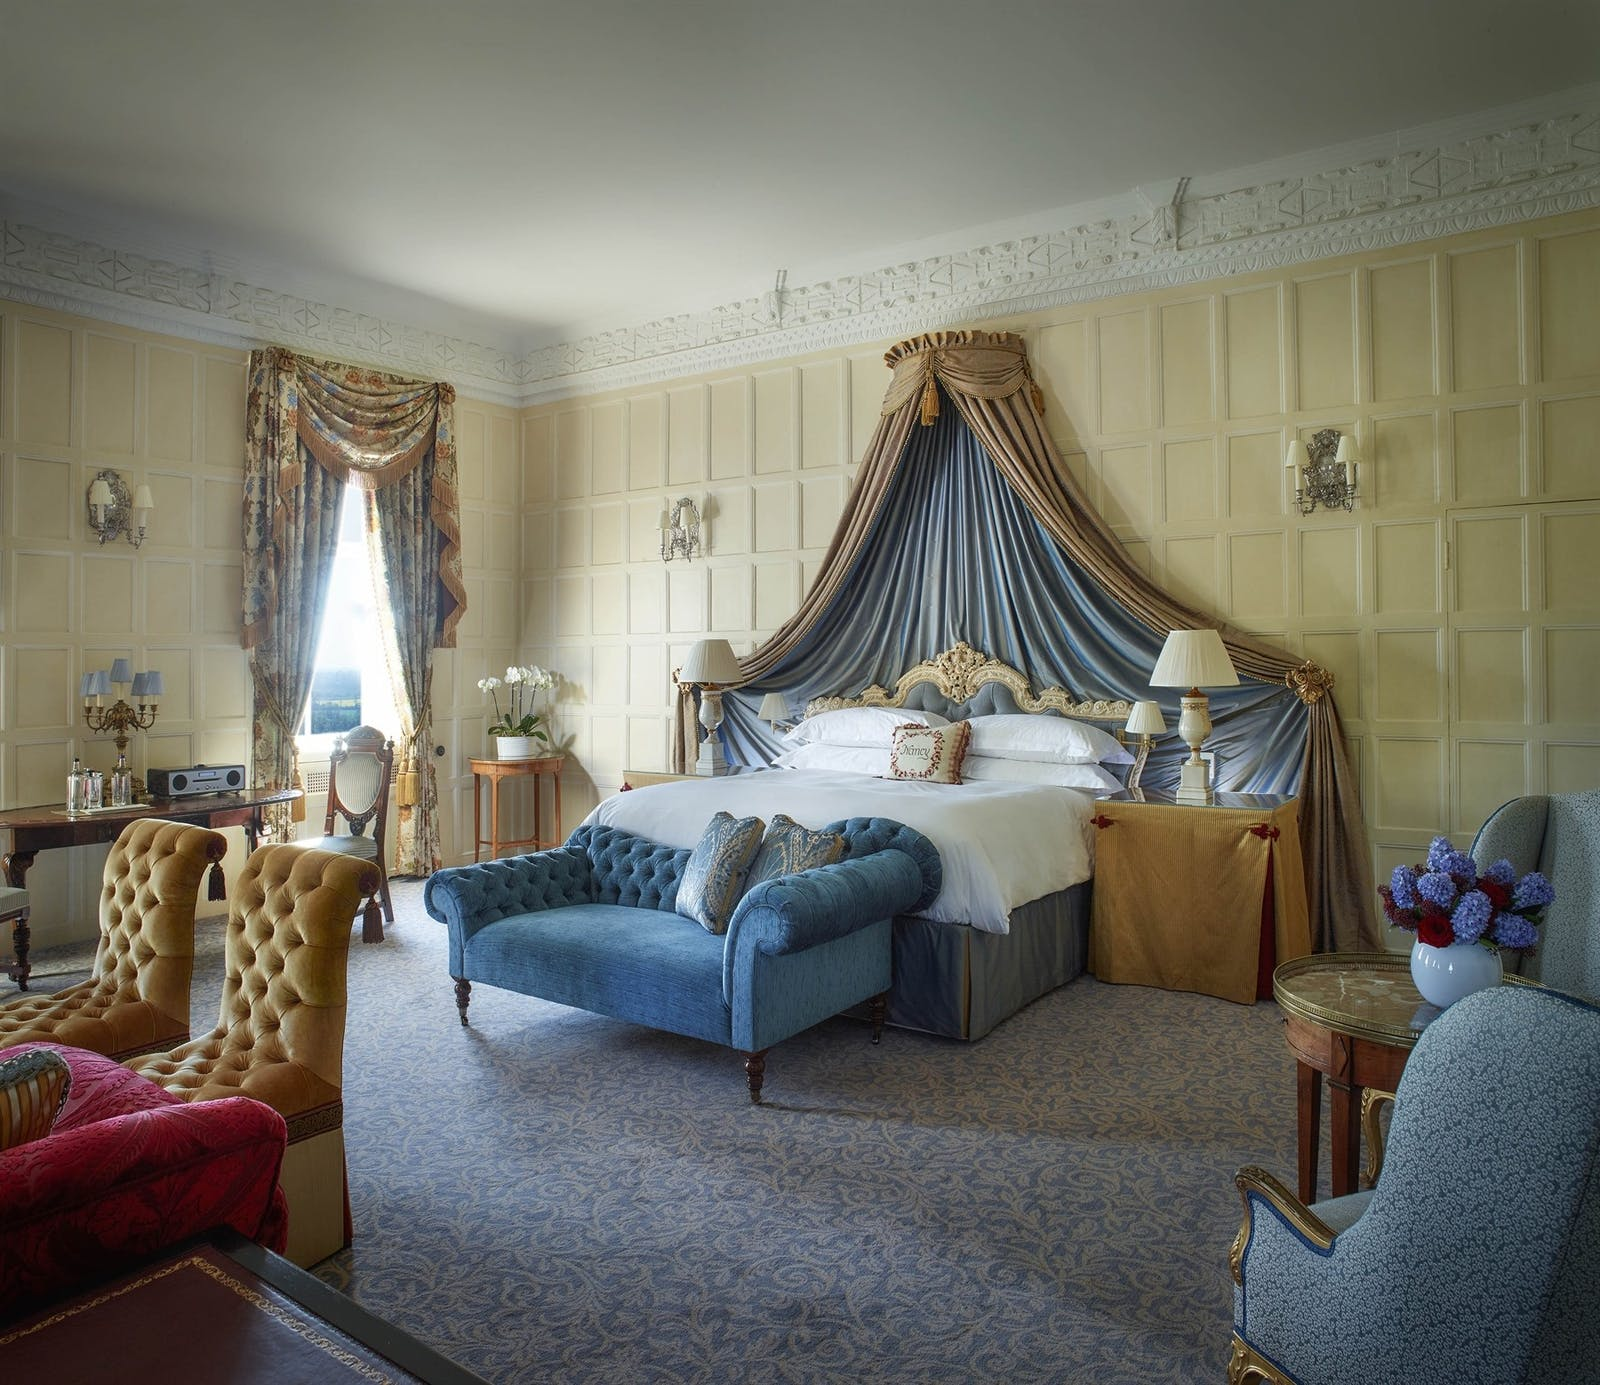 Lady Astor Room at Cliveden Taplow, Berkshire, England